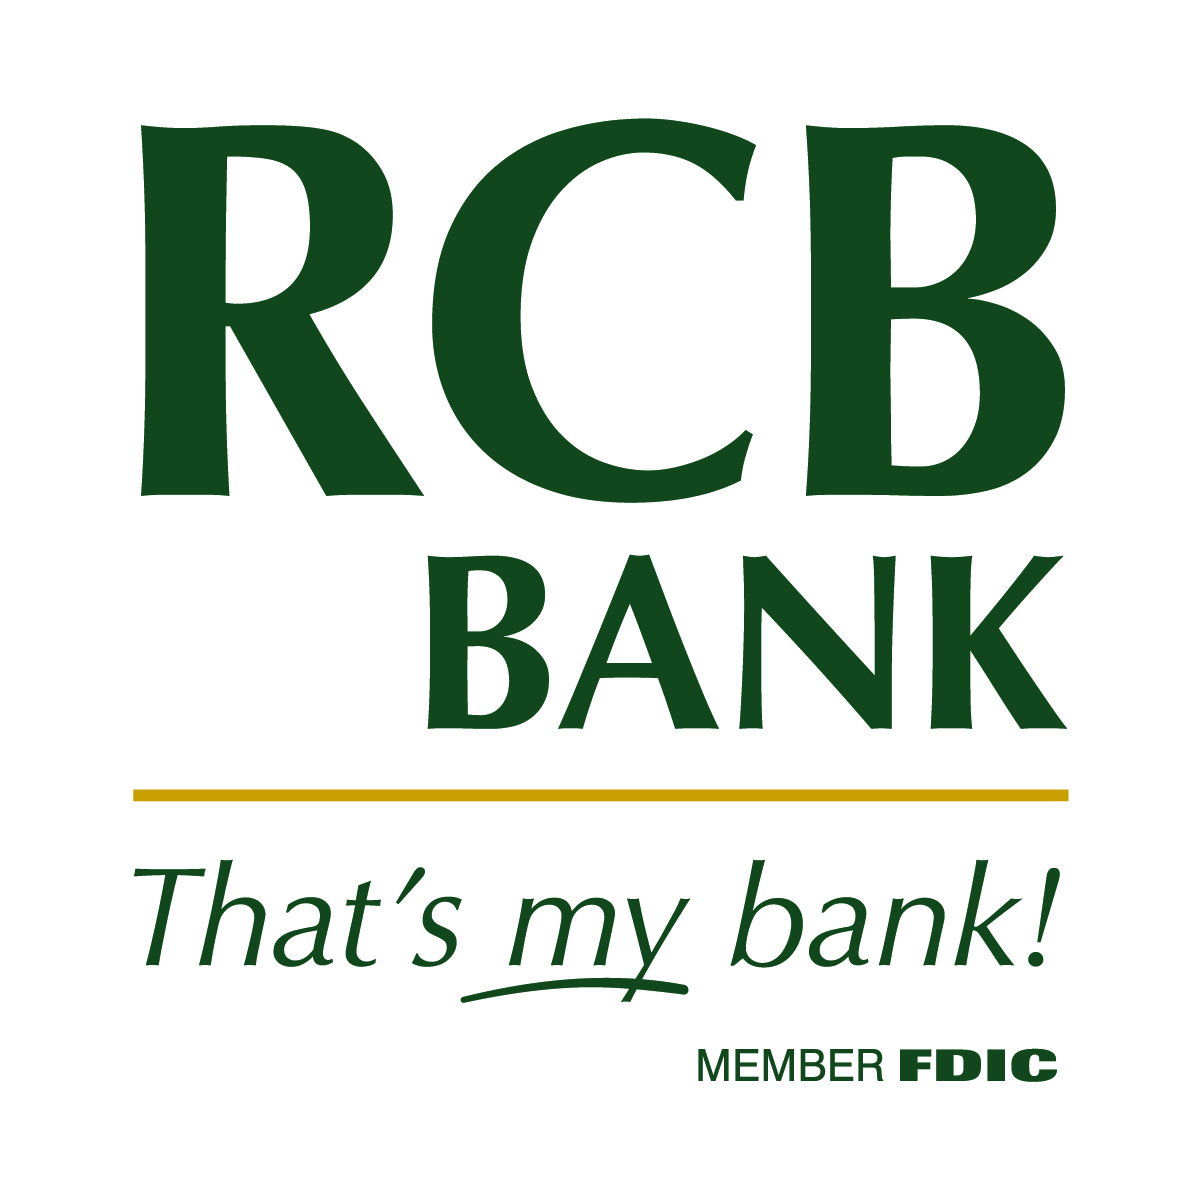 RCB-Bank-Logo_Color-FDIC (002)